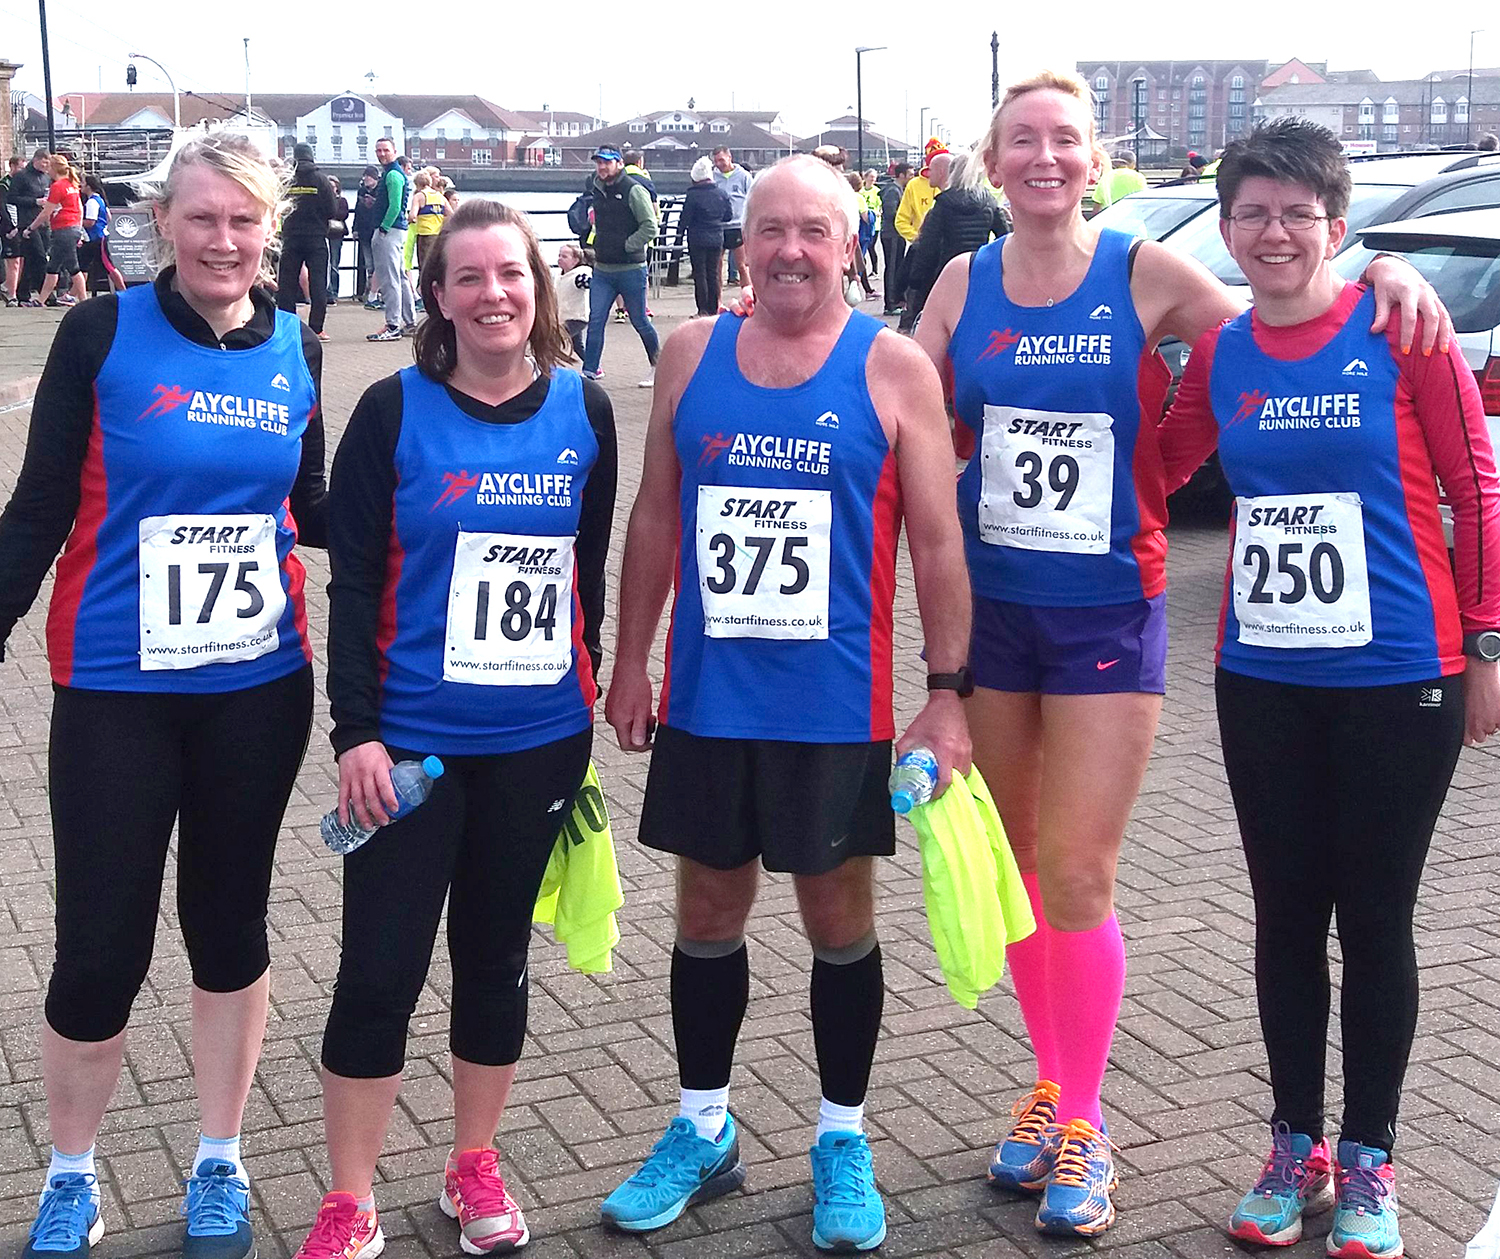 Aycliffe Running Club News 15/04/16